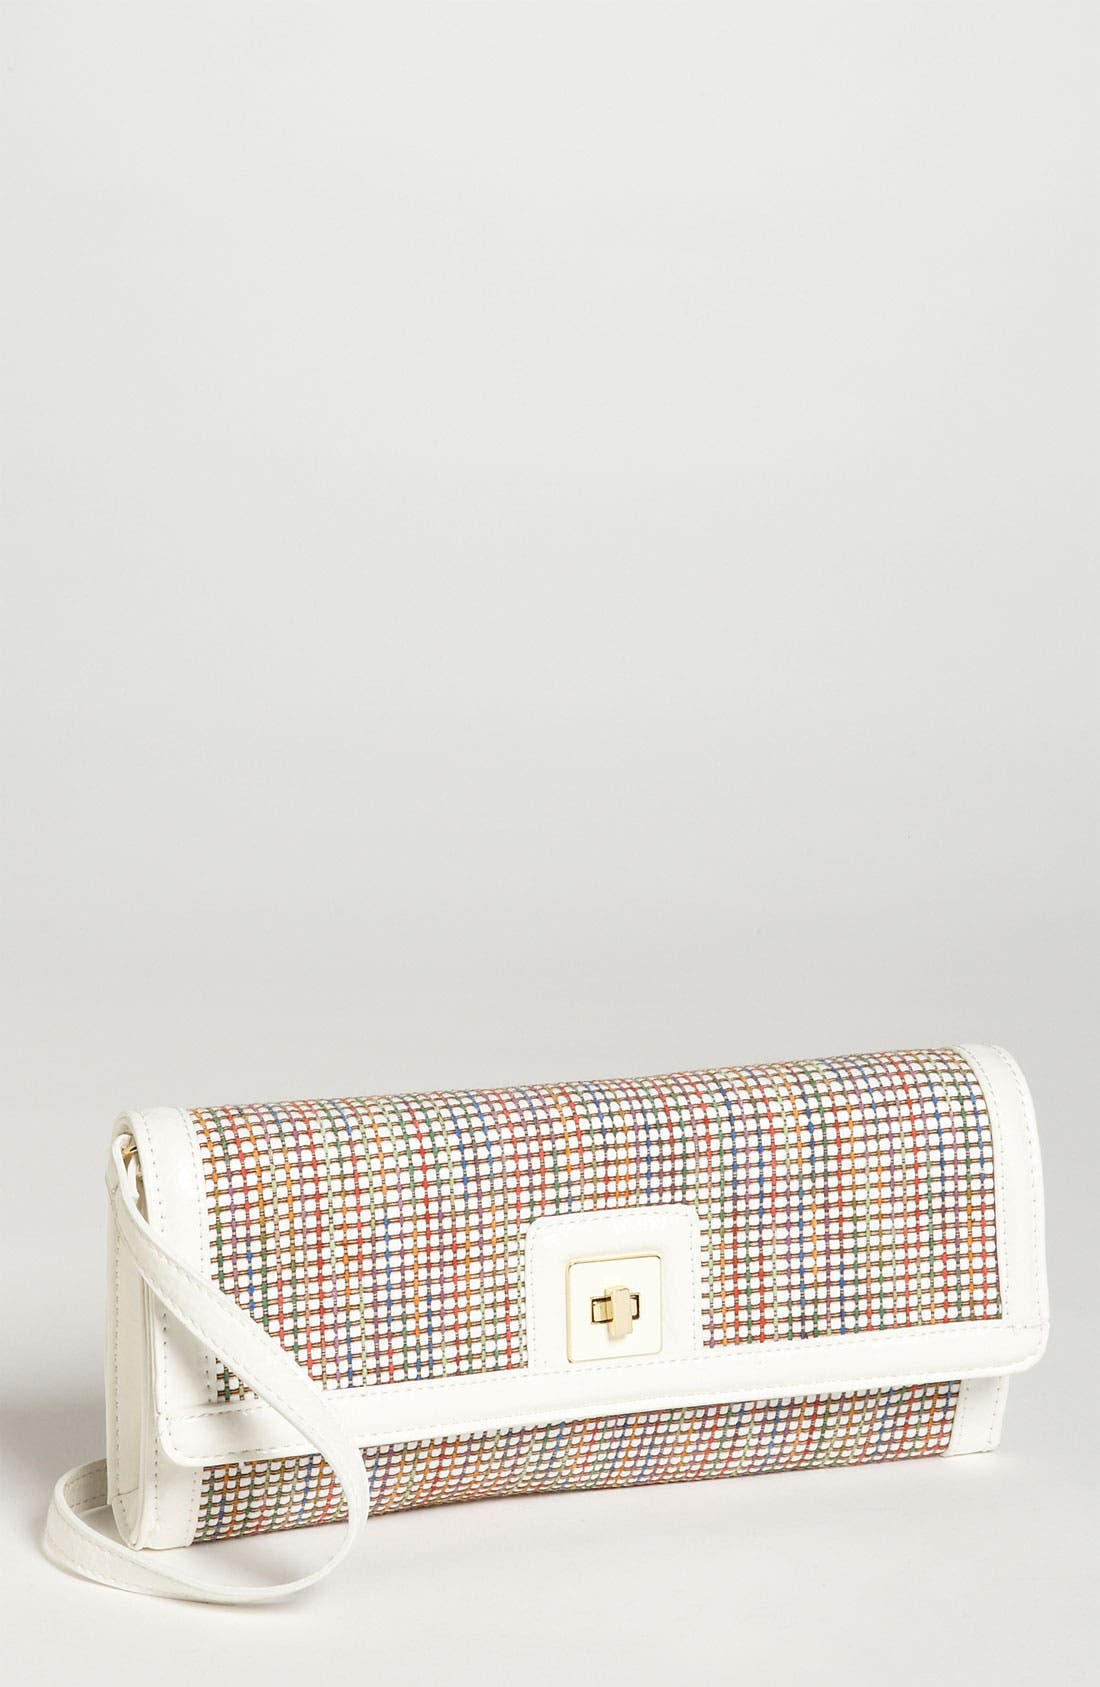 Main Image - SR Squared by Sondra Roberts Multicolored Straw Clutch